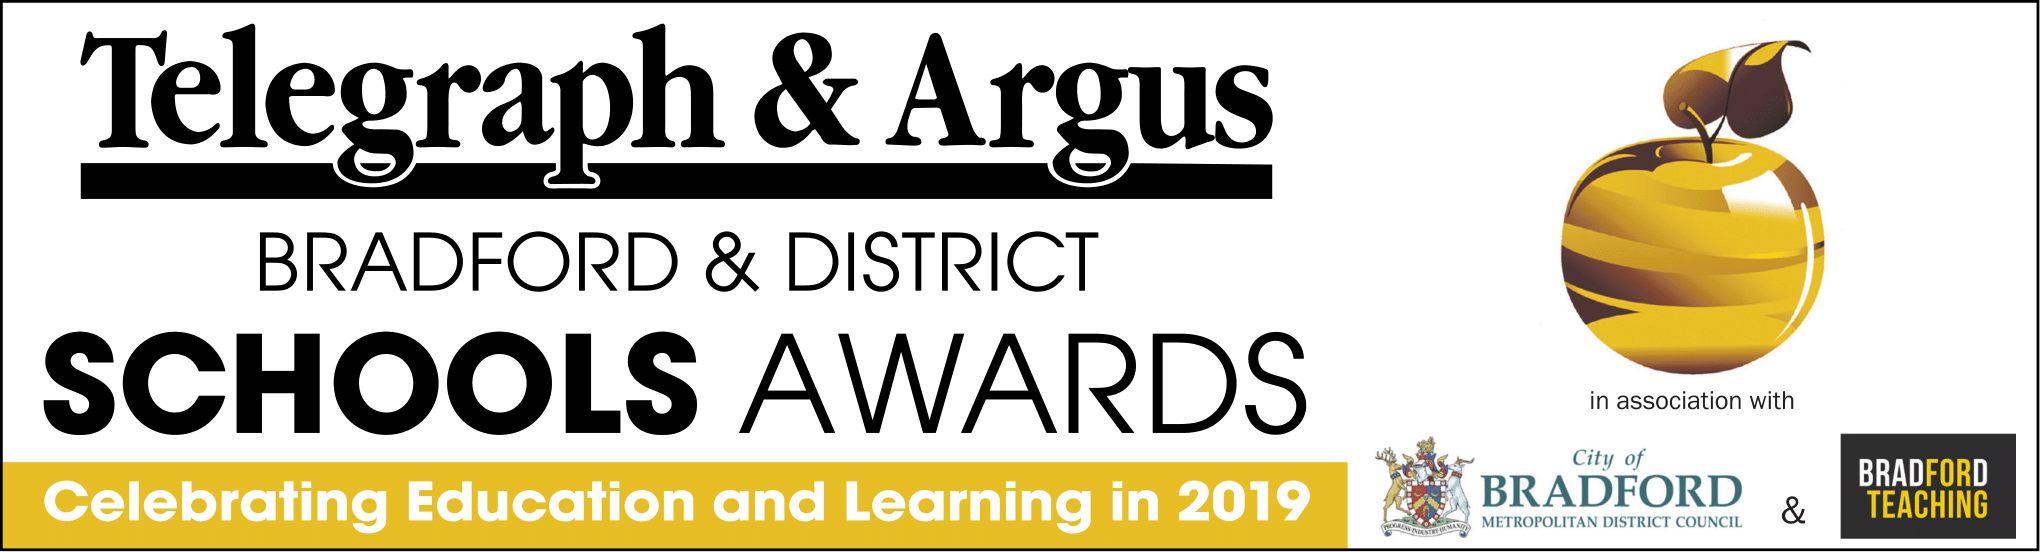 Bradford Telegraph and Argus: Schools Awards logo new